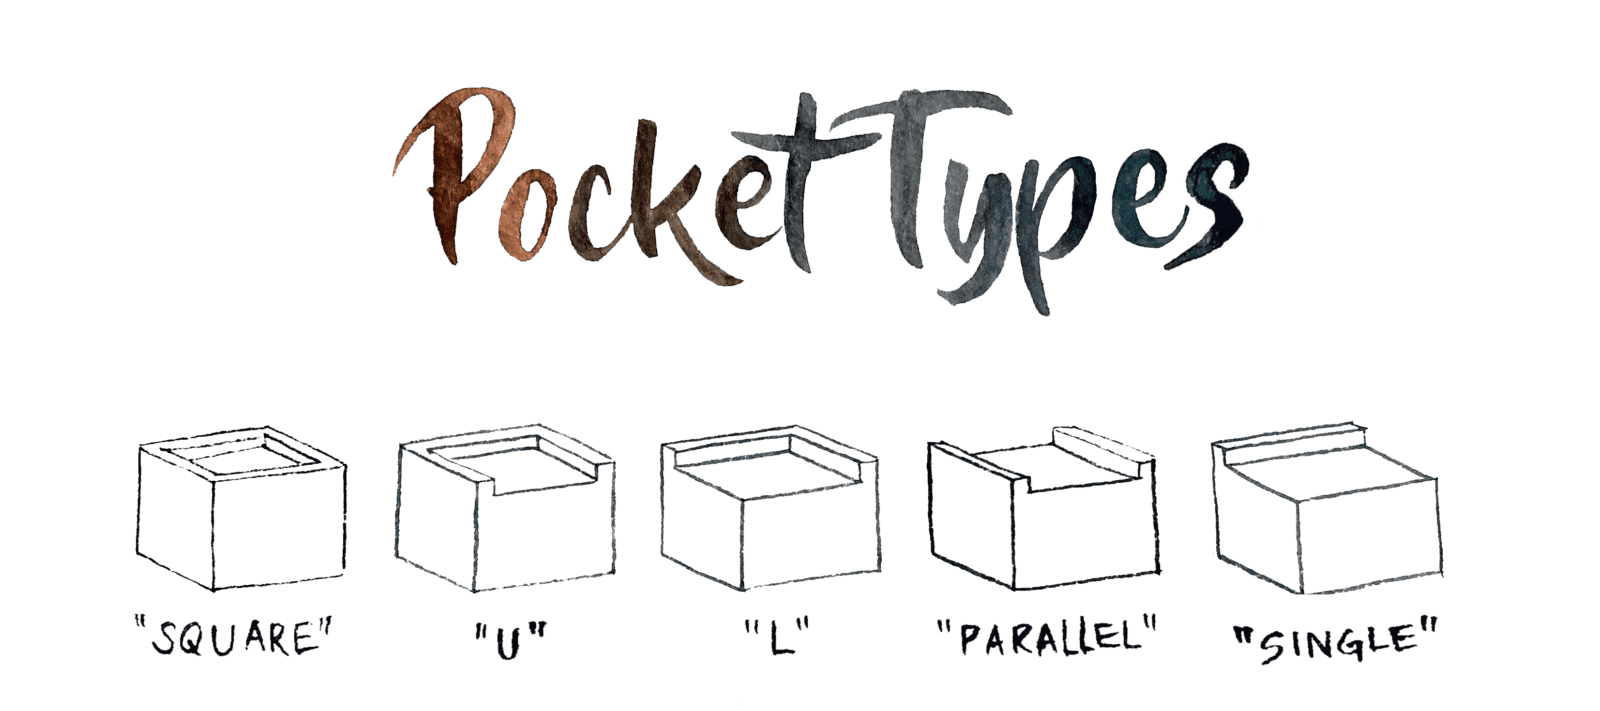 Pocket Type